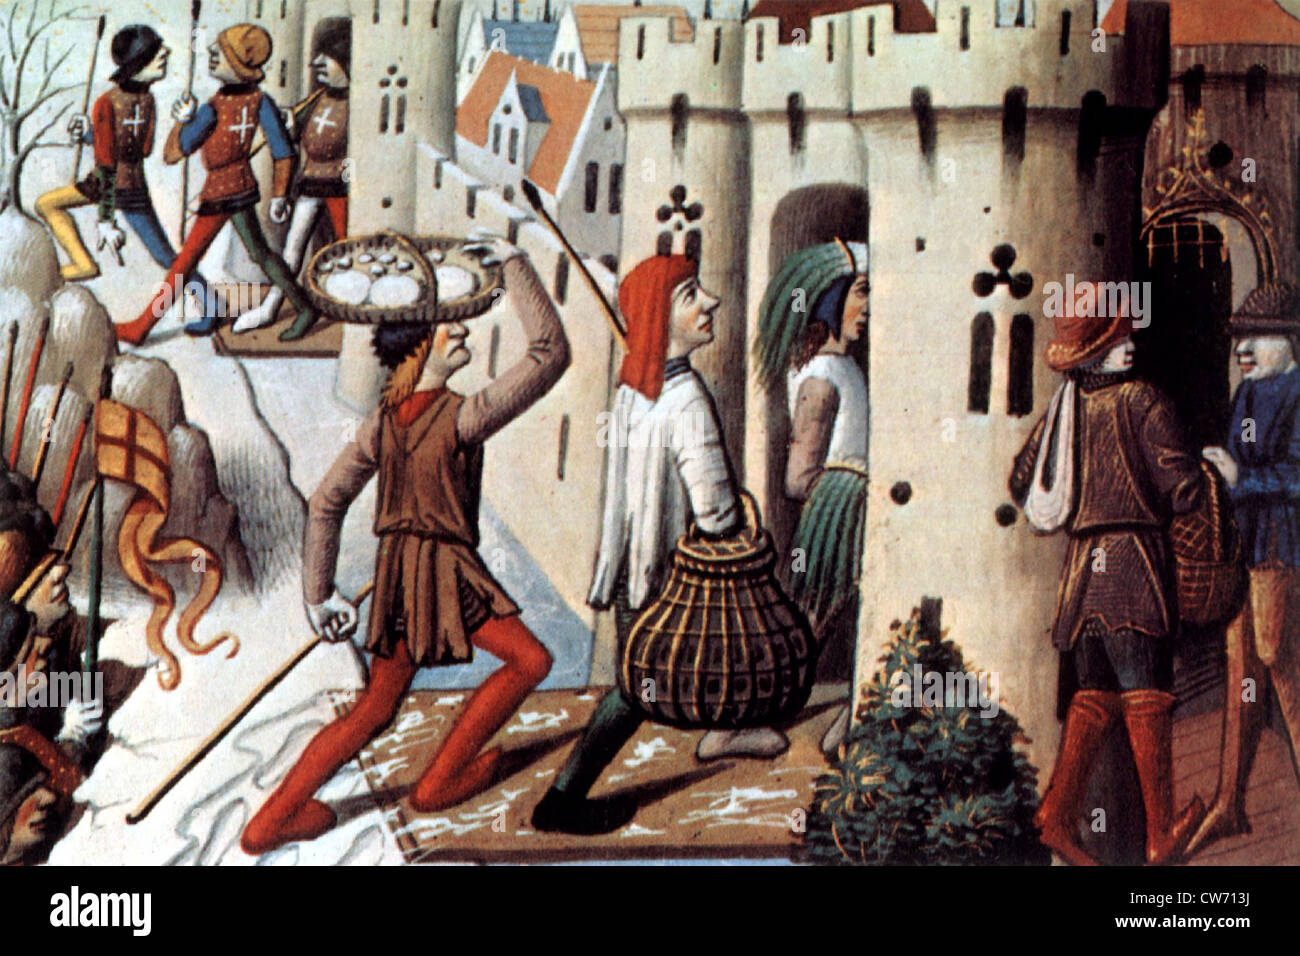 Supplyng cities in the Middle Ages - Stock Image